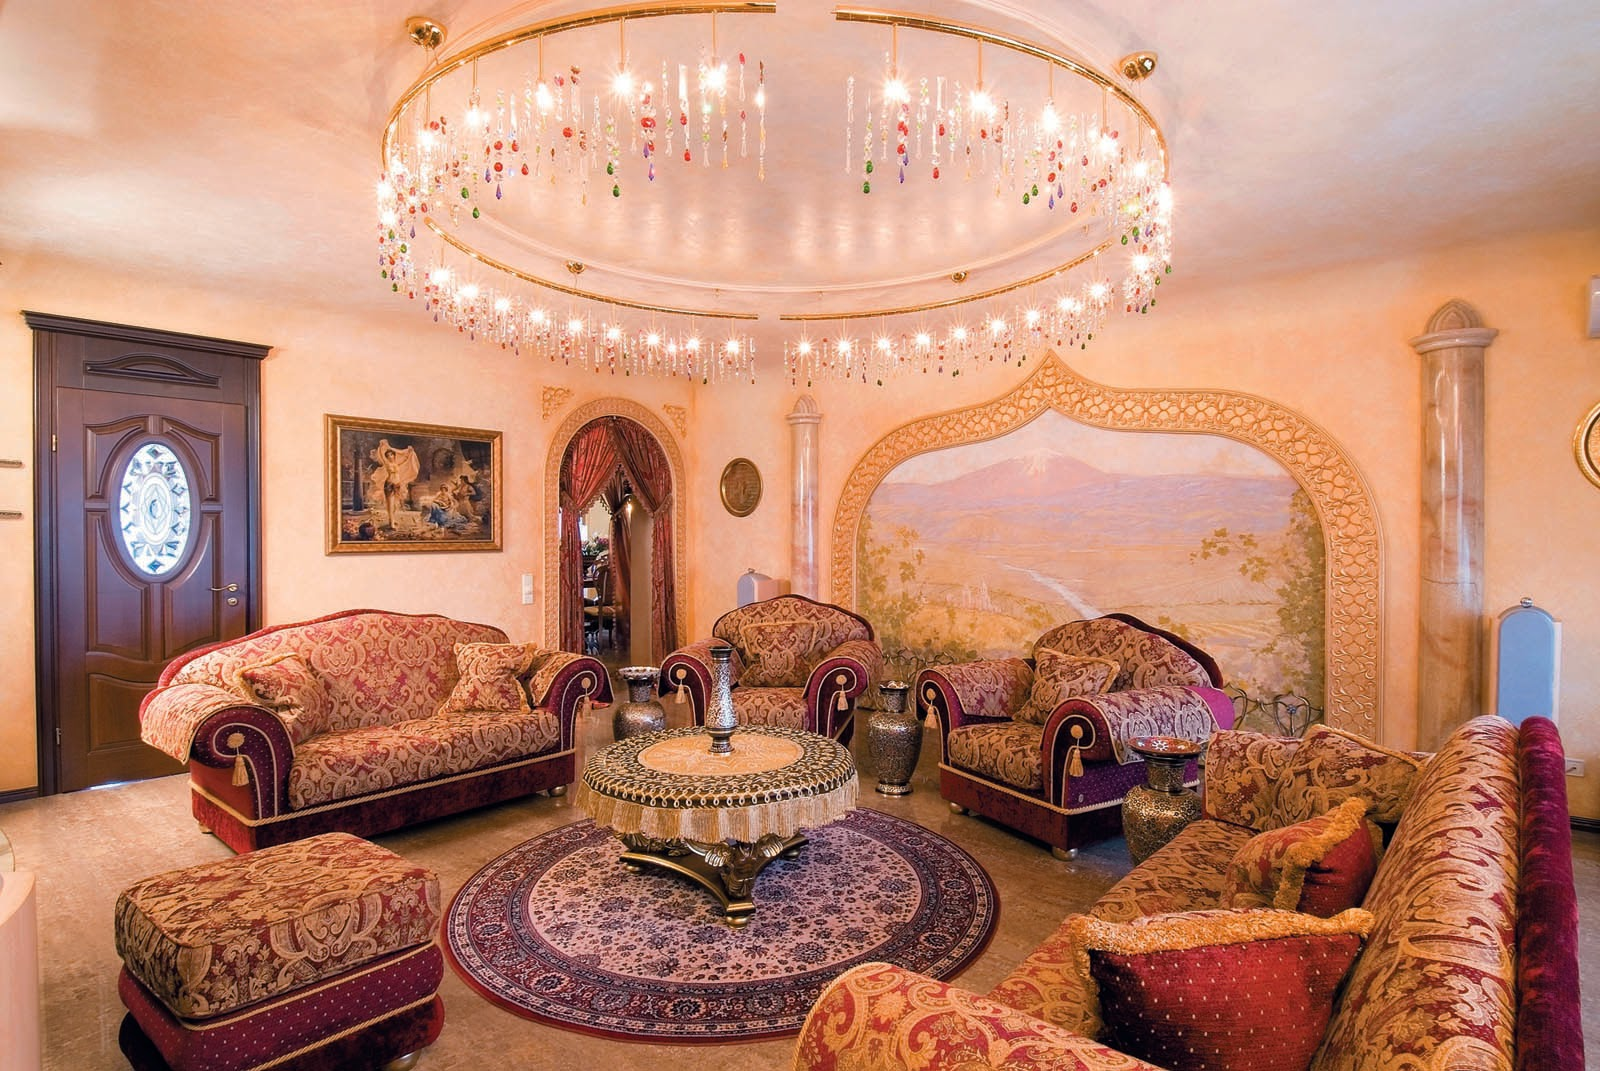 The Most Beautiful House Interior Design Ideas And ... on House Interior Ideas  id=54672